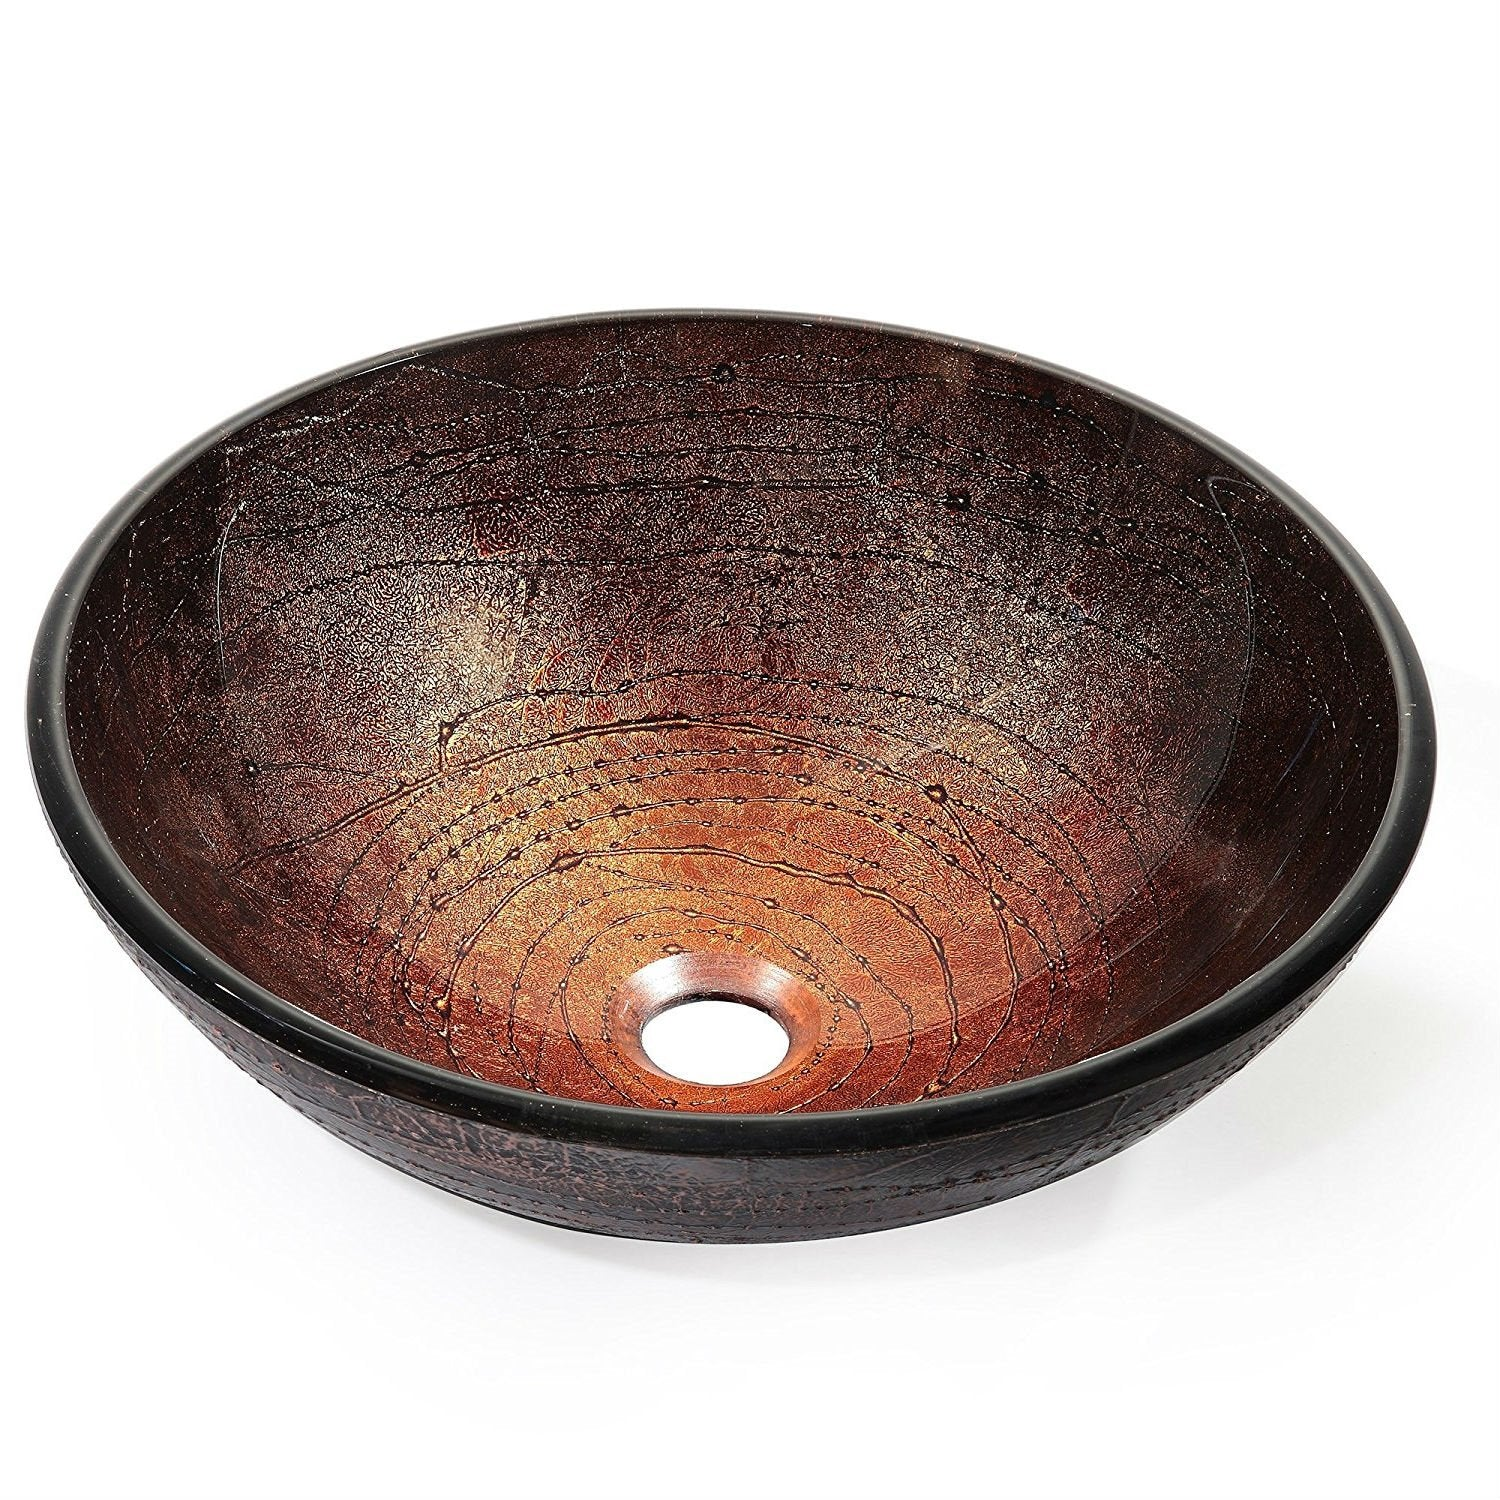 Modern 16.5 inch Round Copper Color Glass Vessel Sink